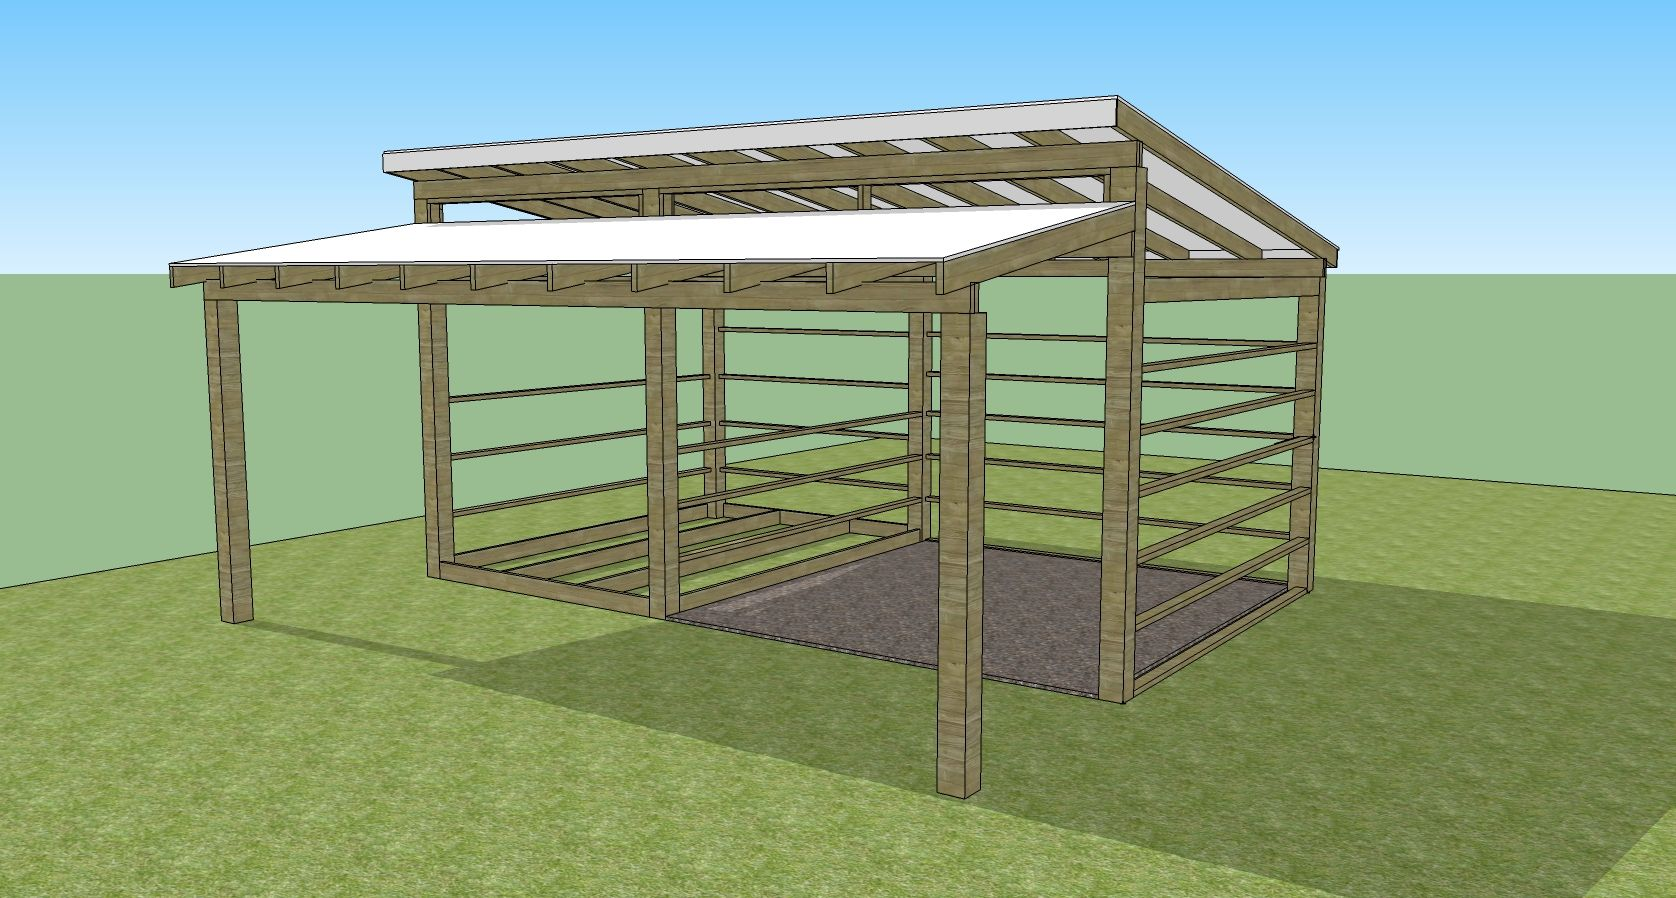 Our Small Horse Barn And Tack Room In Sketchup Small